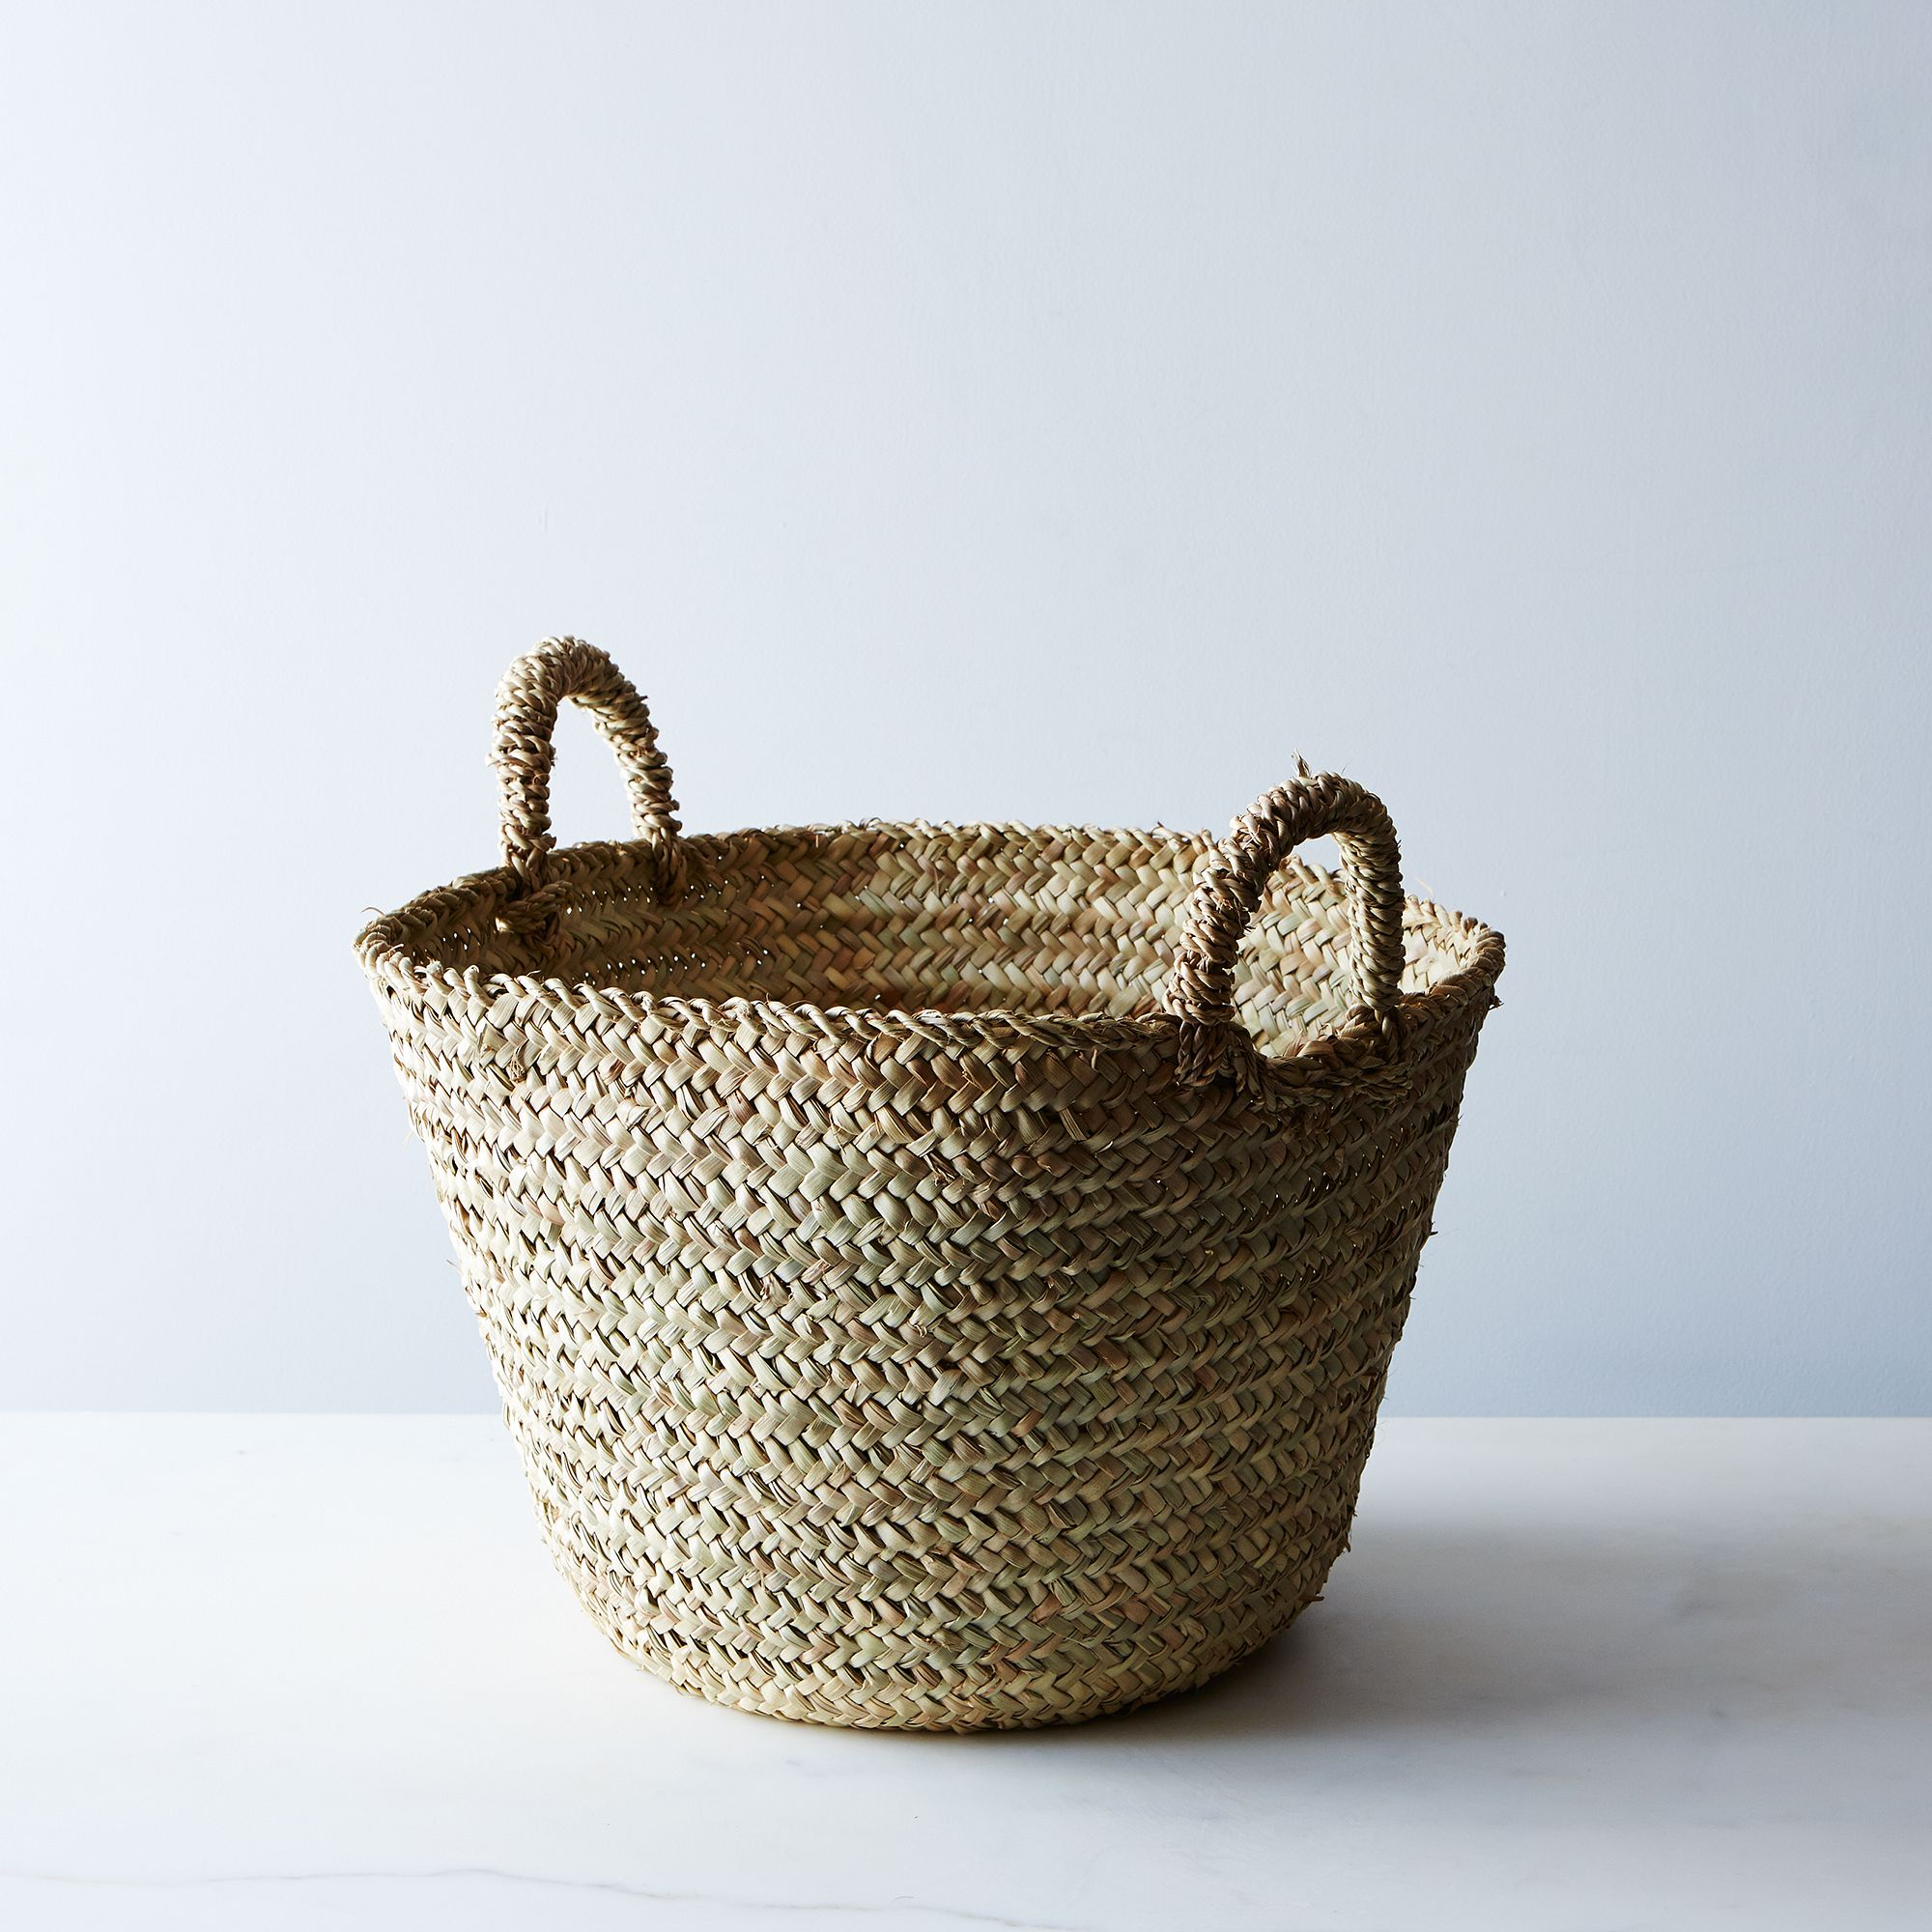 98daf832 a0f7 11e5 a190 0ef7535729df  2014 1217 elsie green moroccan woven basket medium 078